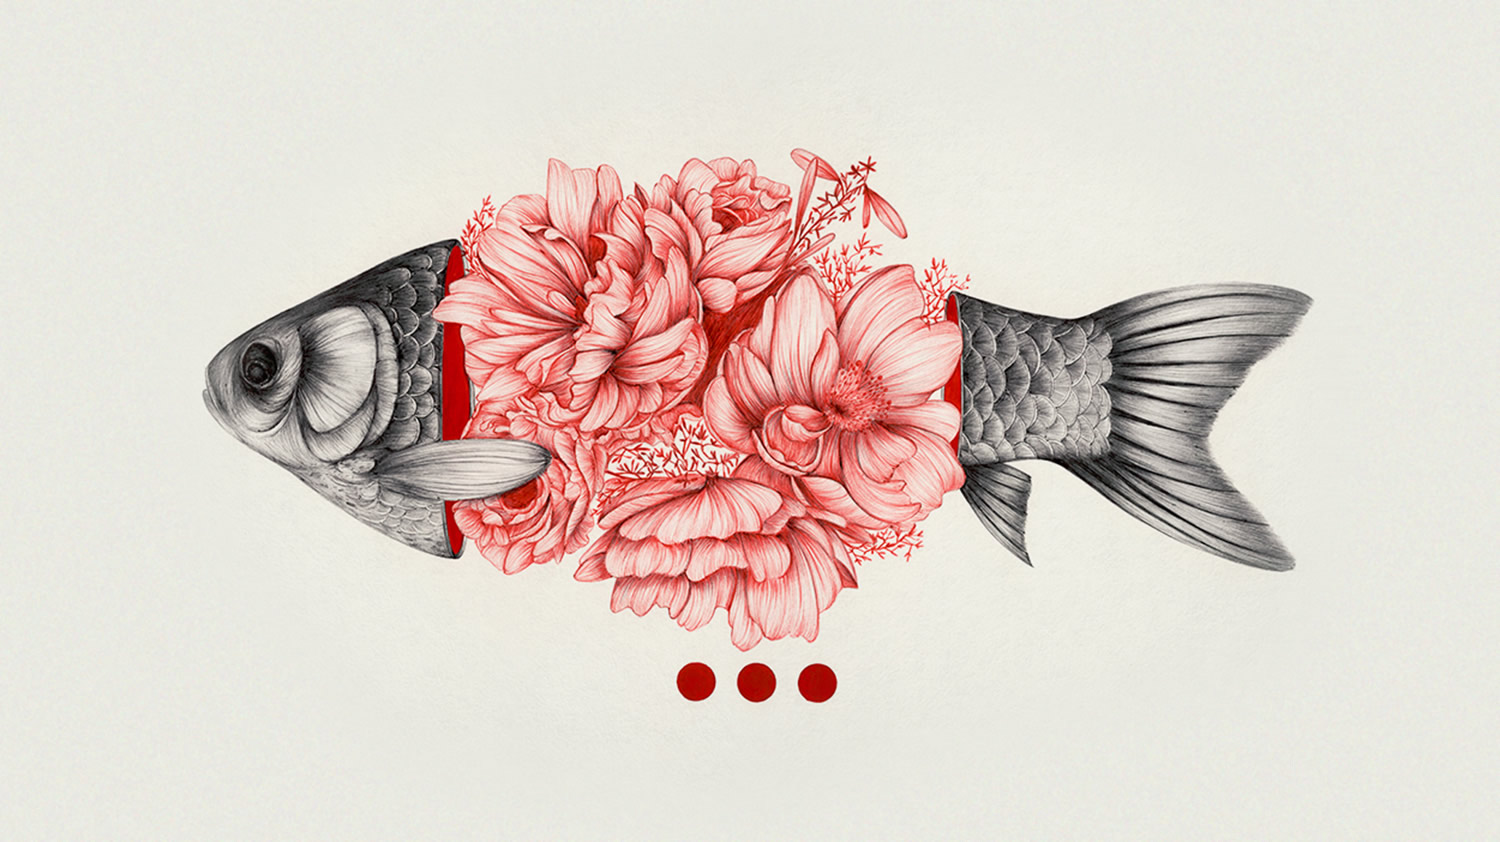 to bloom not to bleed, roses blooming from fish by peony yip